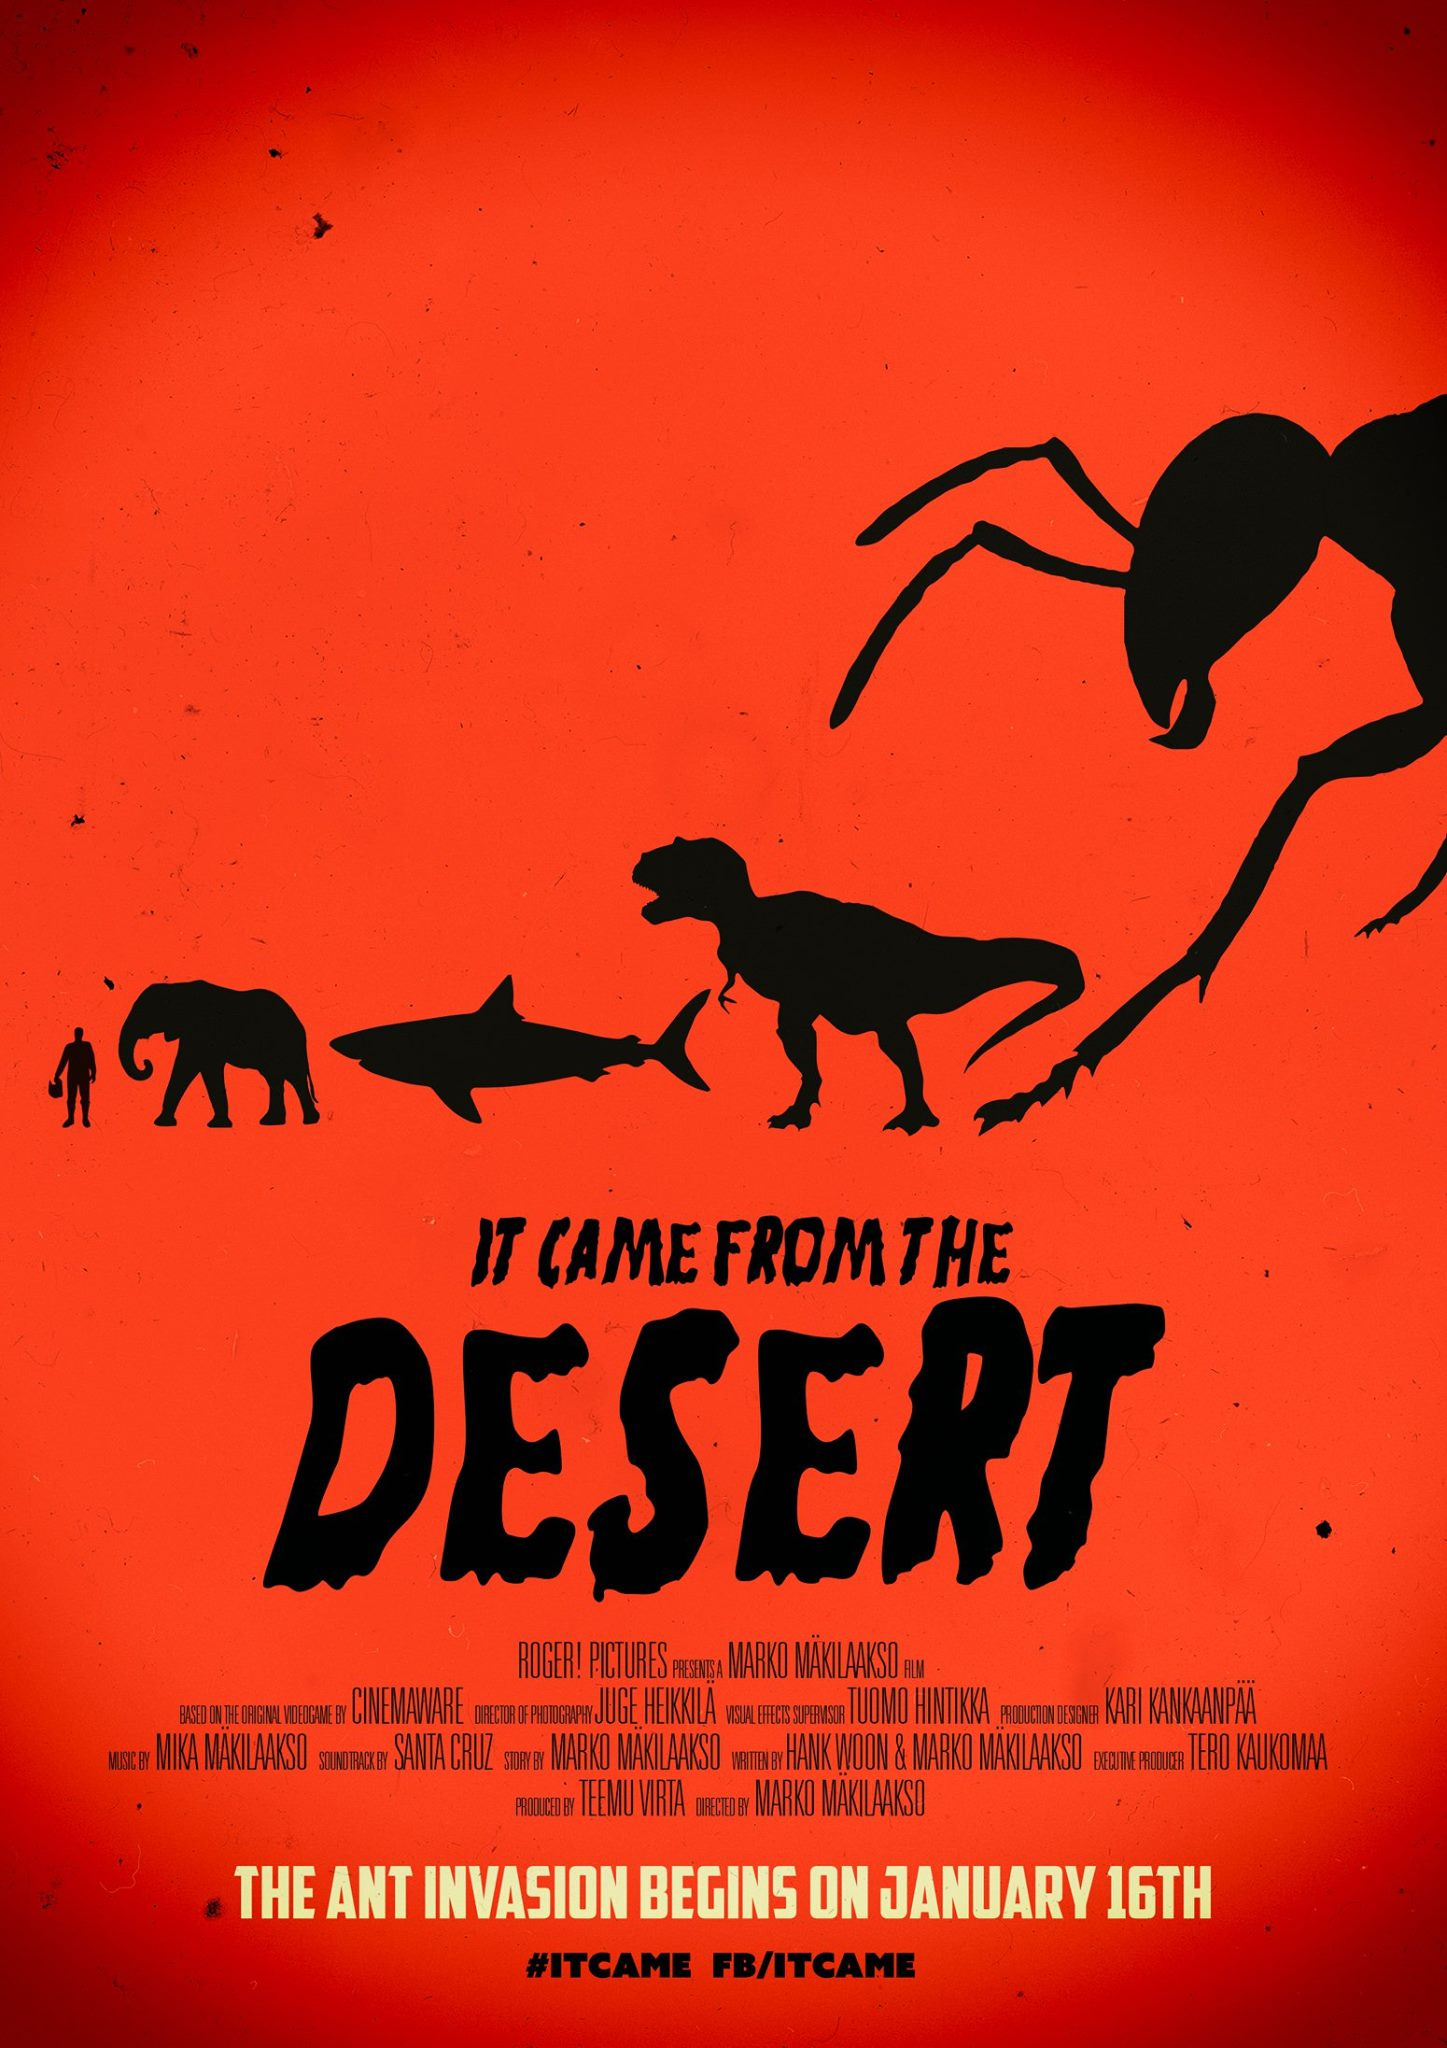 It Came From The Desert With Giant Ants Dinosaurs And More